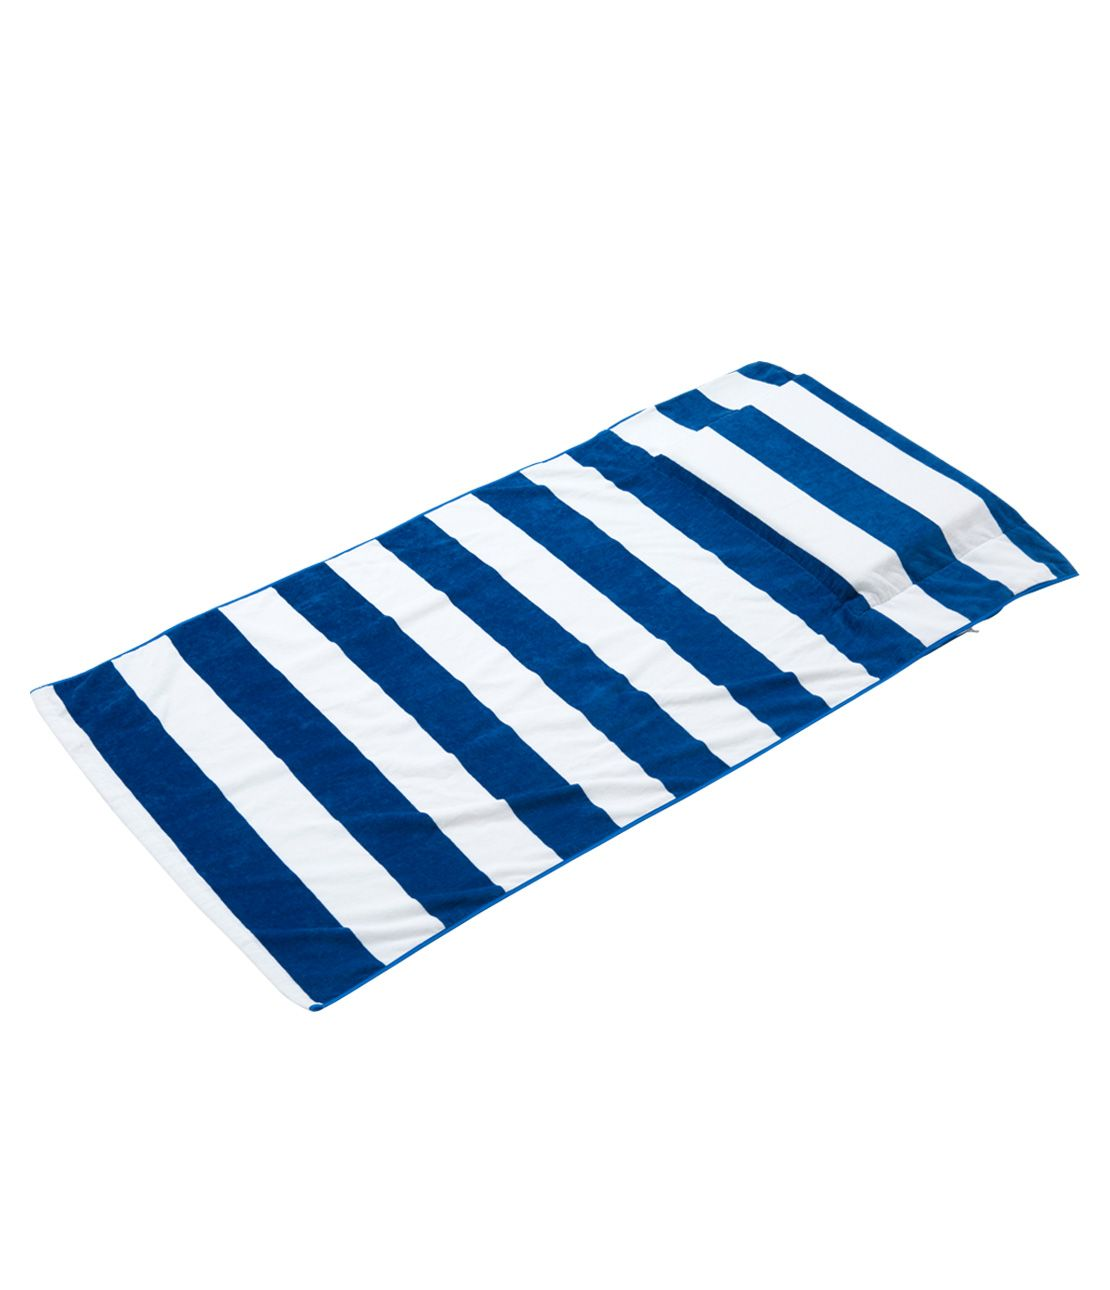 Pillow with beach towels